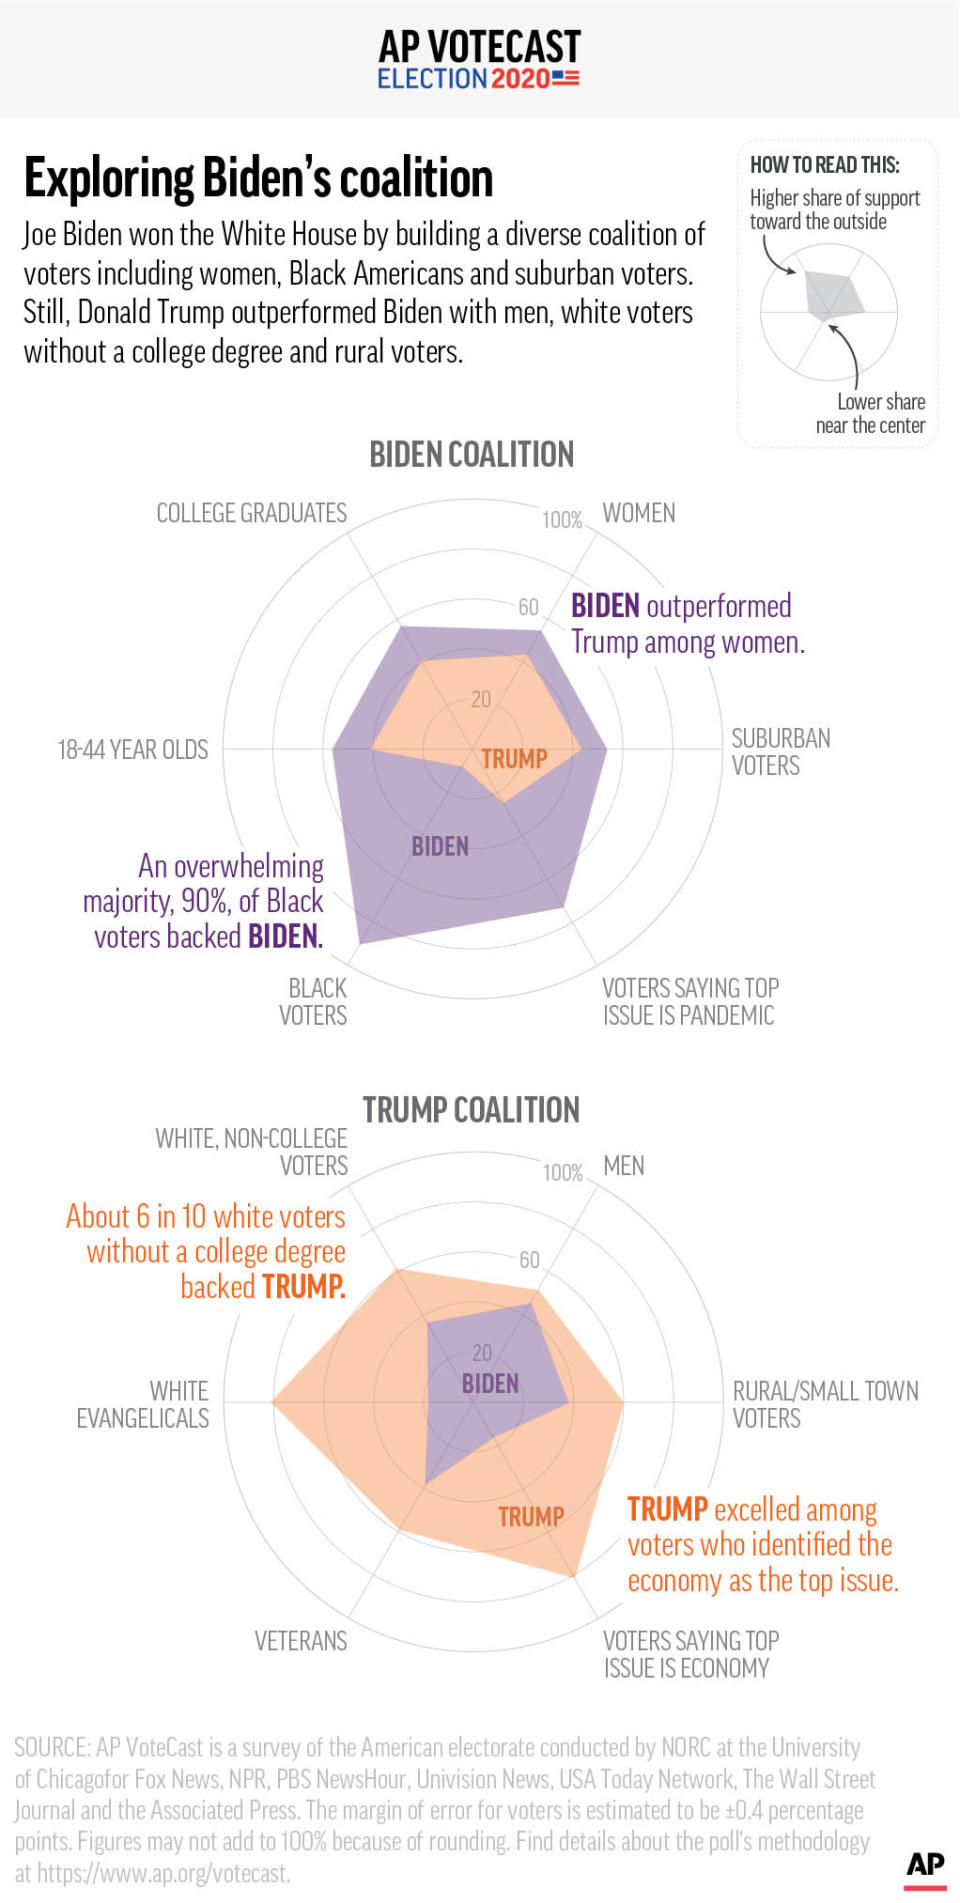 Joe Biden won the White House by building a diverse coalition of voters including women, Black Americans and suburban voters. Still, Donald Trump outperformed Biden with men, white voters without a college degree and rural voters.